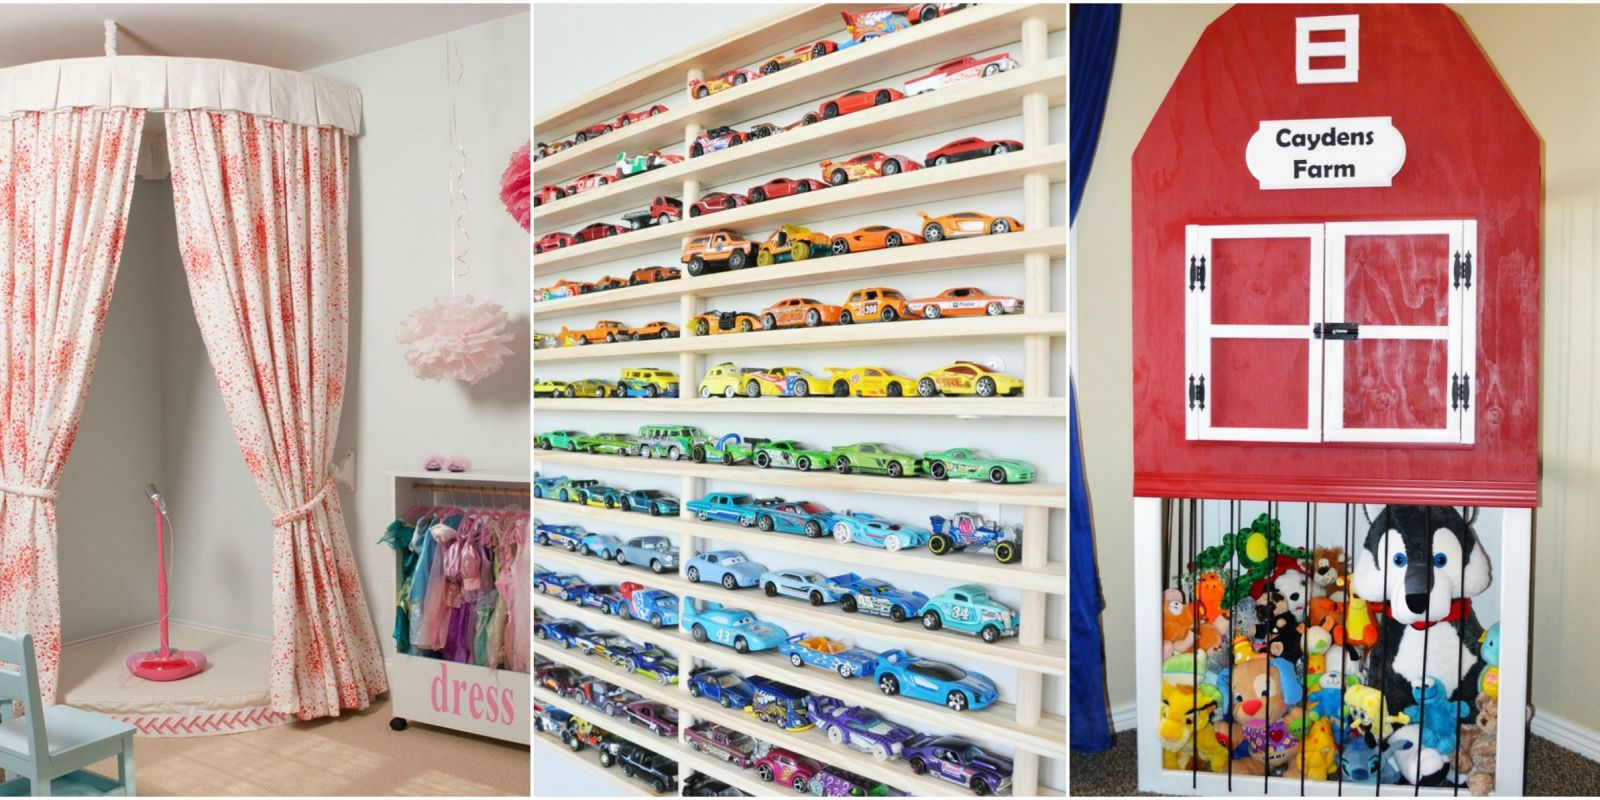 8 Kids Storage And Organization Ideas: Stylish Toy Storage Ideas